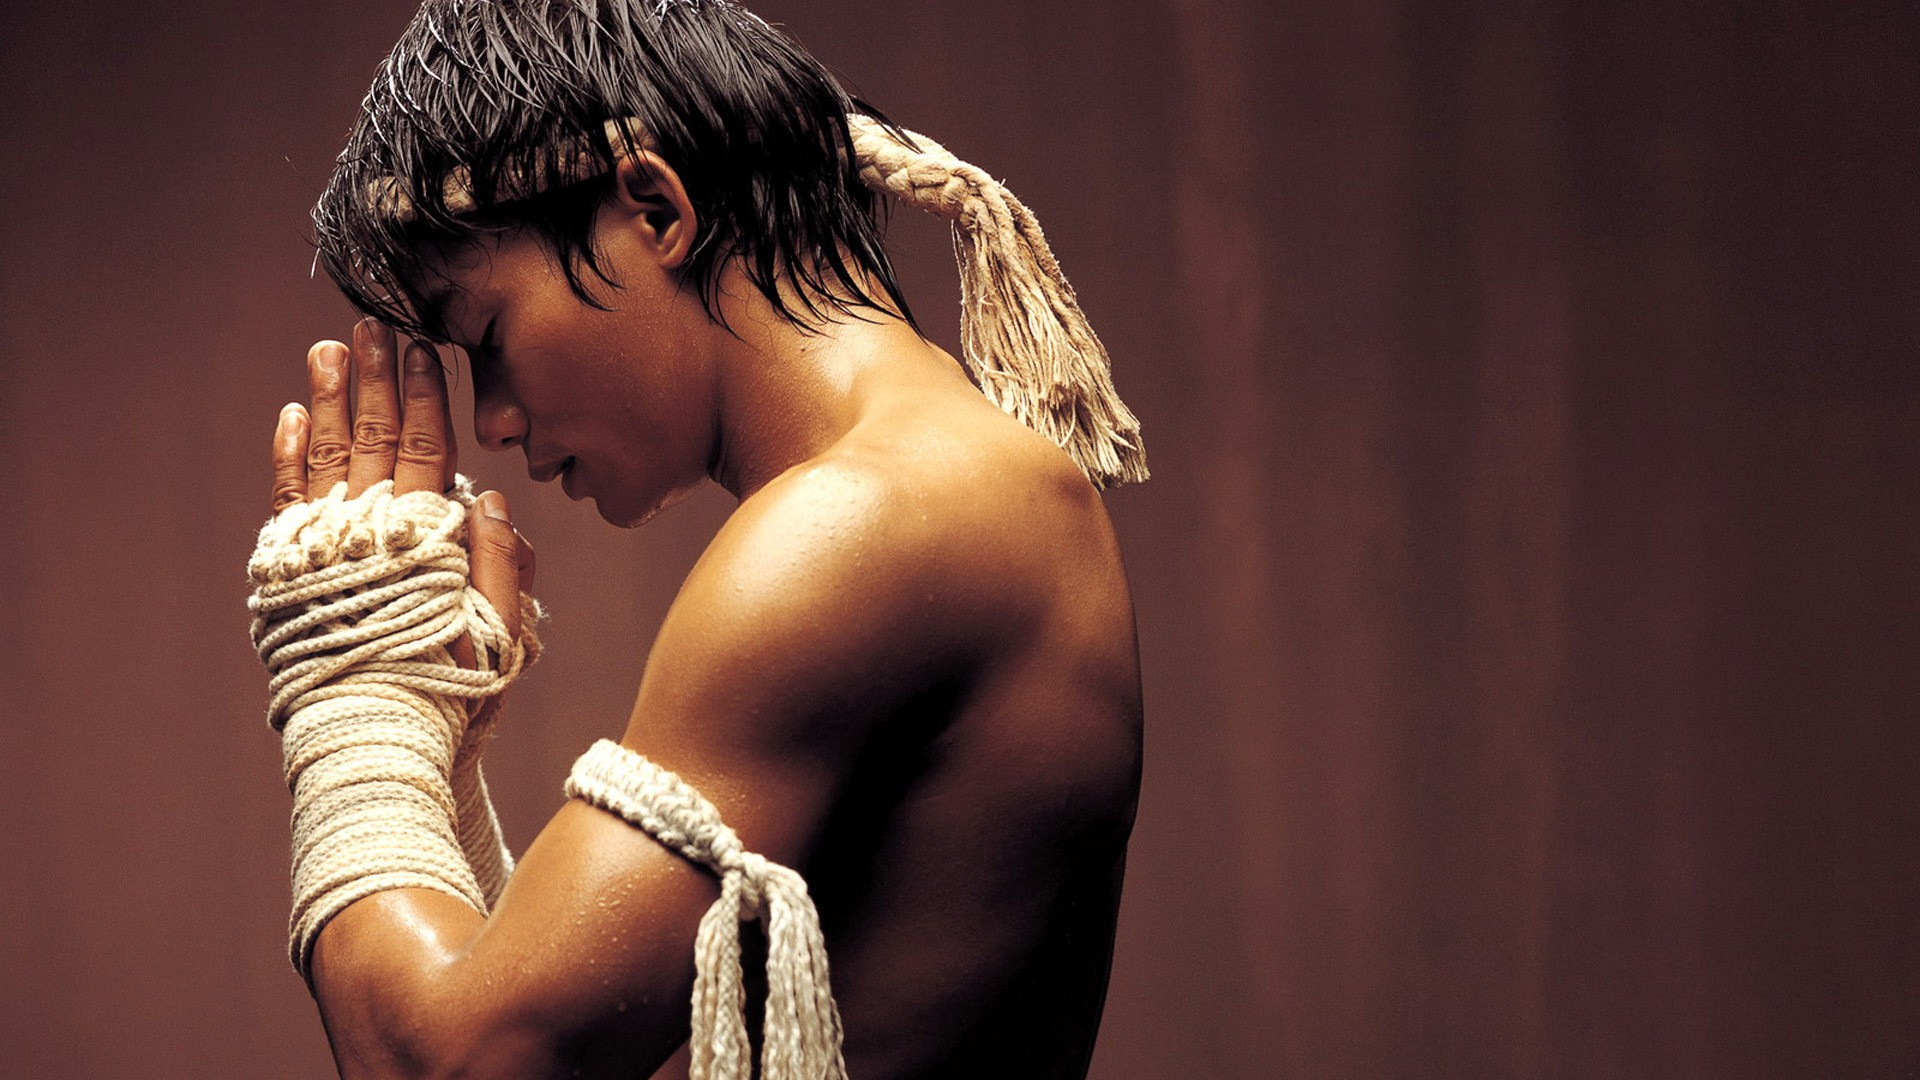 Sports - Martial Arts  Tony Jaa Wallpaper